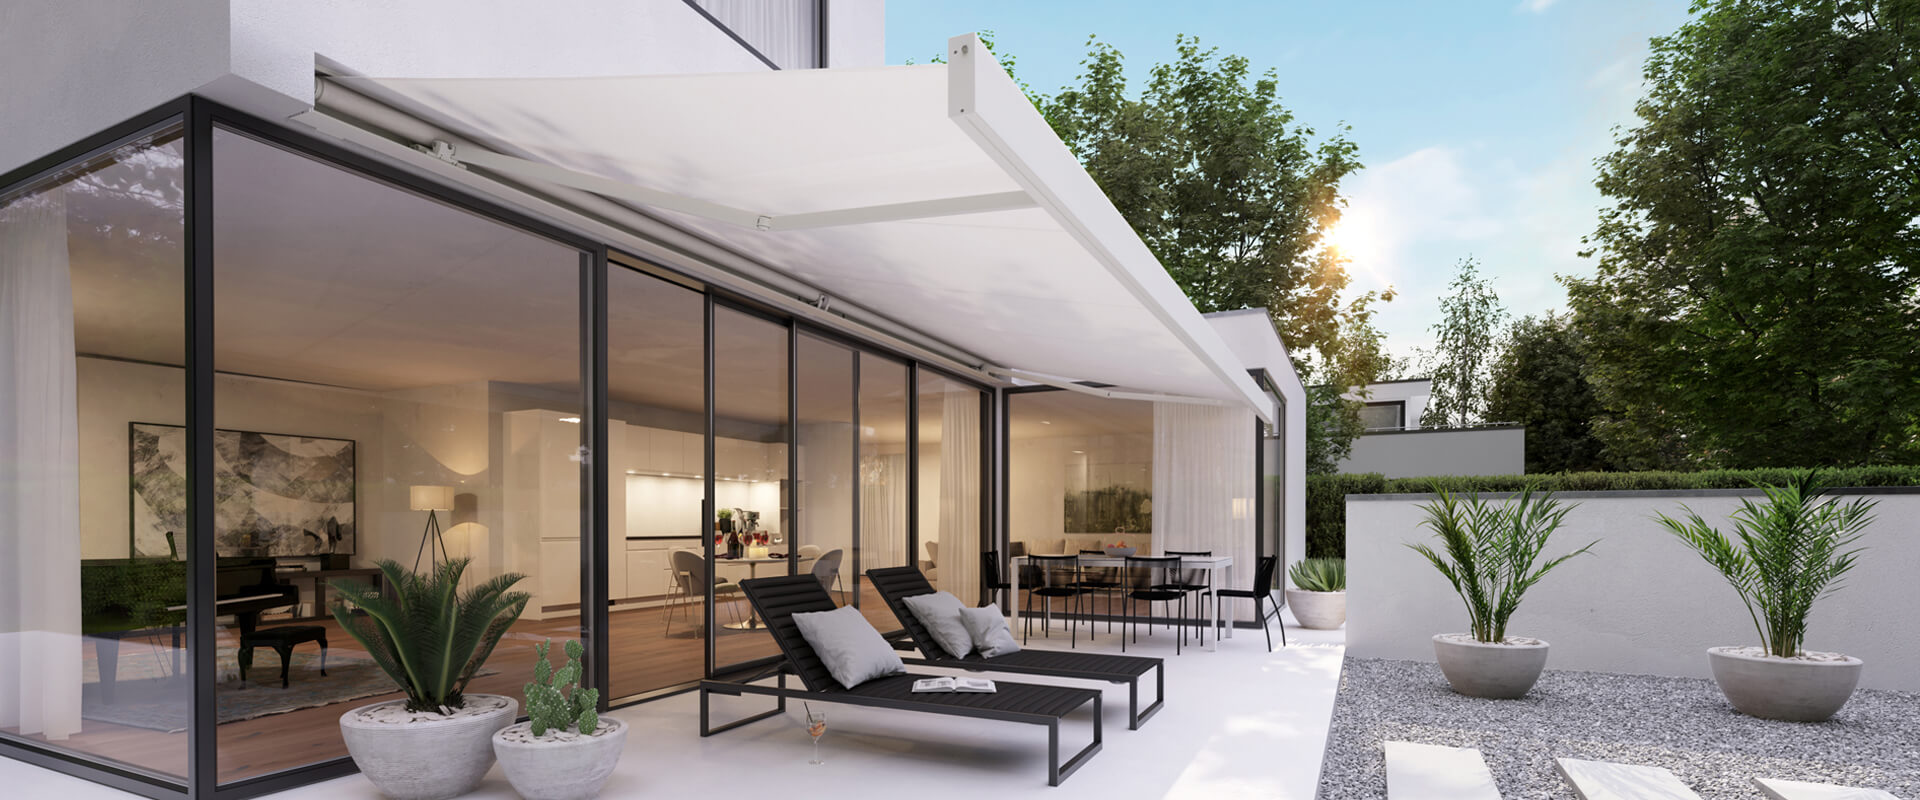 Markilux Brisbane by Dove Industry - Image features folding arm awning